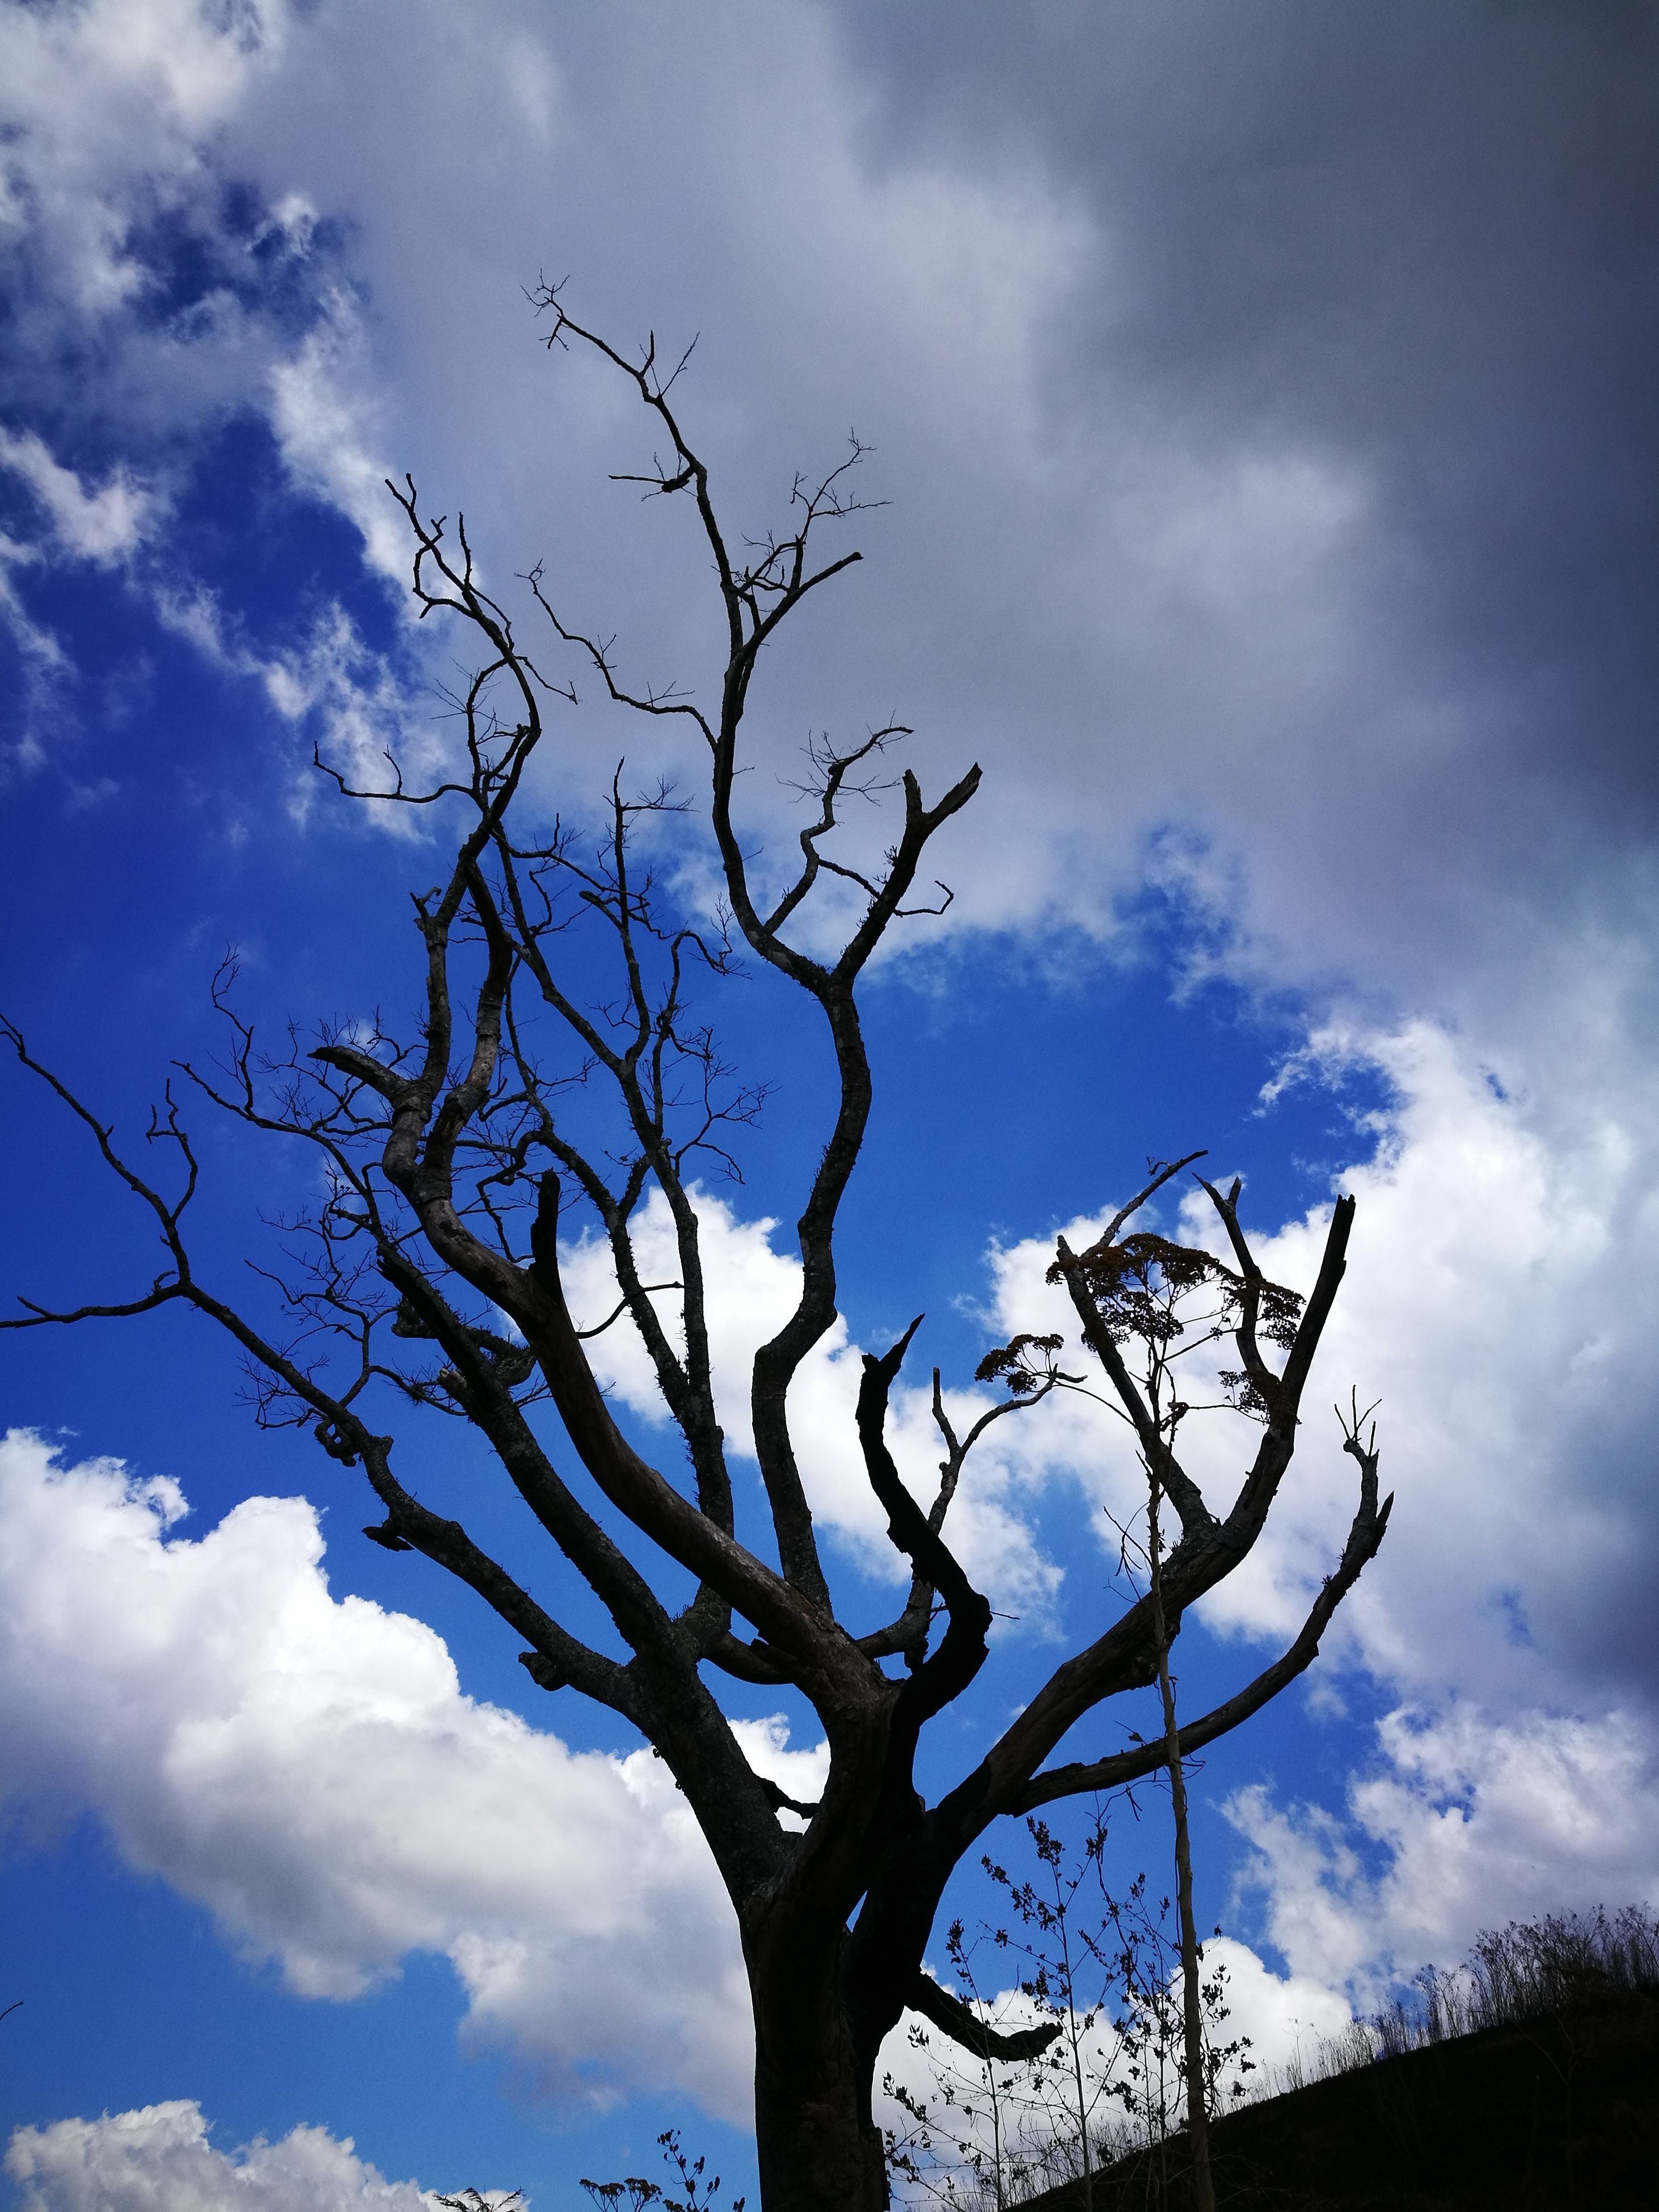 cloud - sky, sky, low angle view, tree, branch, bare tree, no people, nature, outdoors, beauty in nature, day, treetop